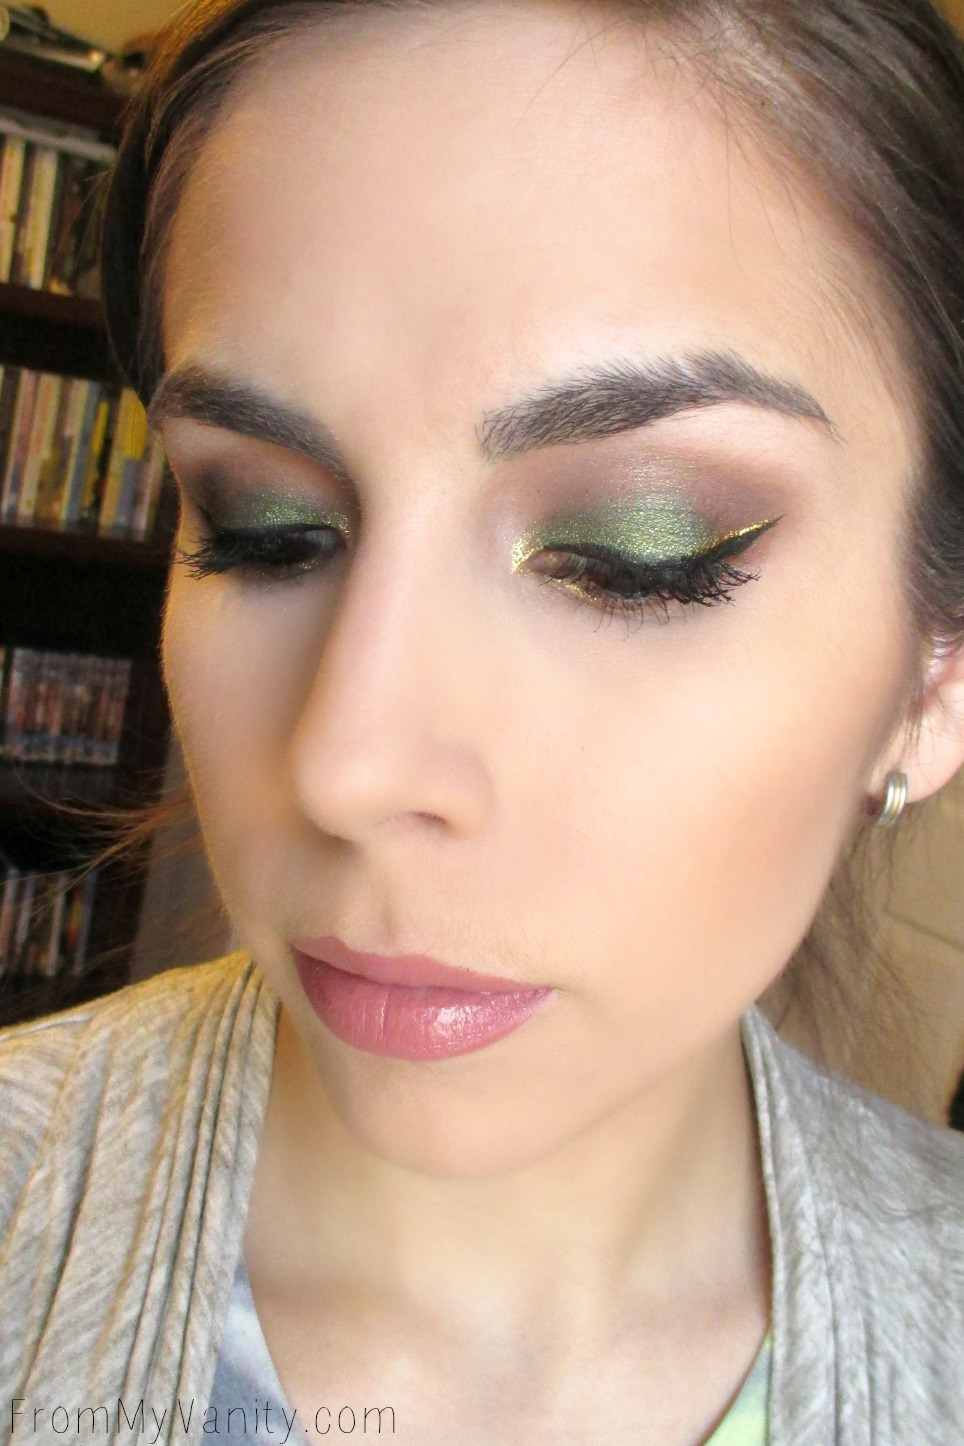 A close up shot of a fun and festive Saint Patrick's Day makeup look!